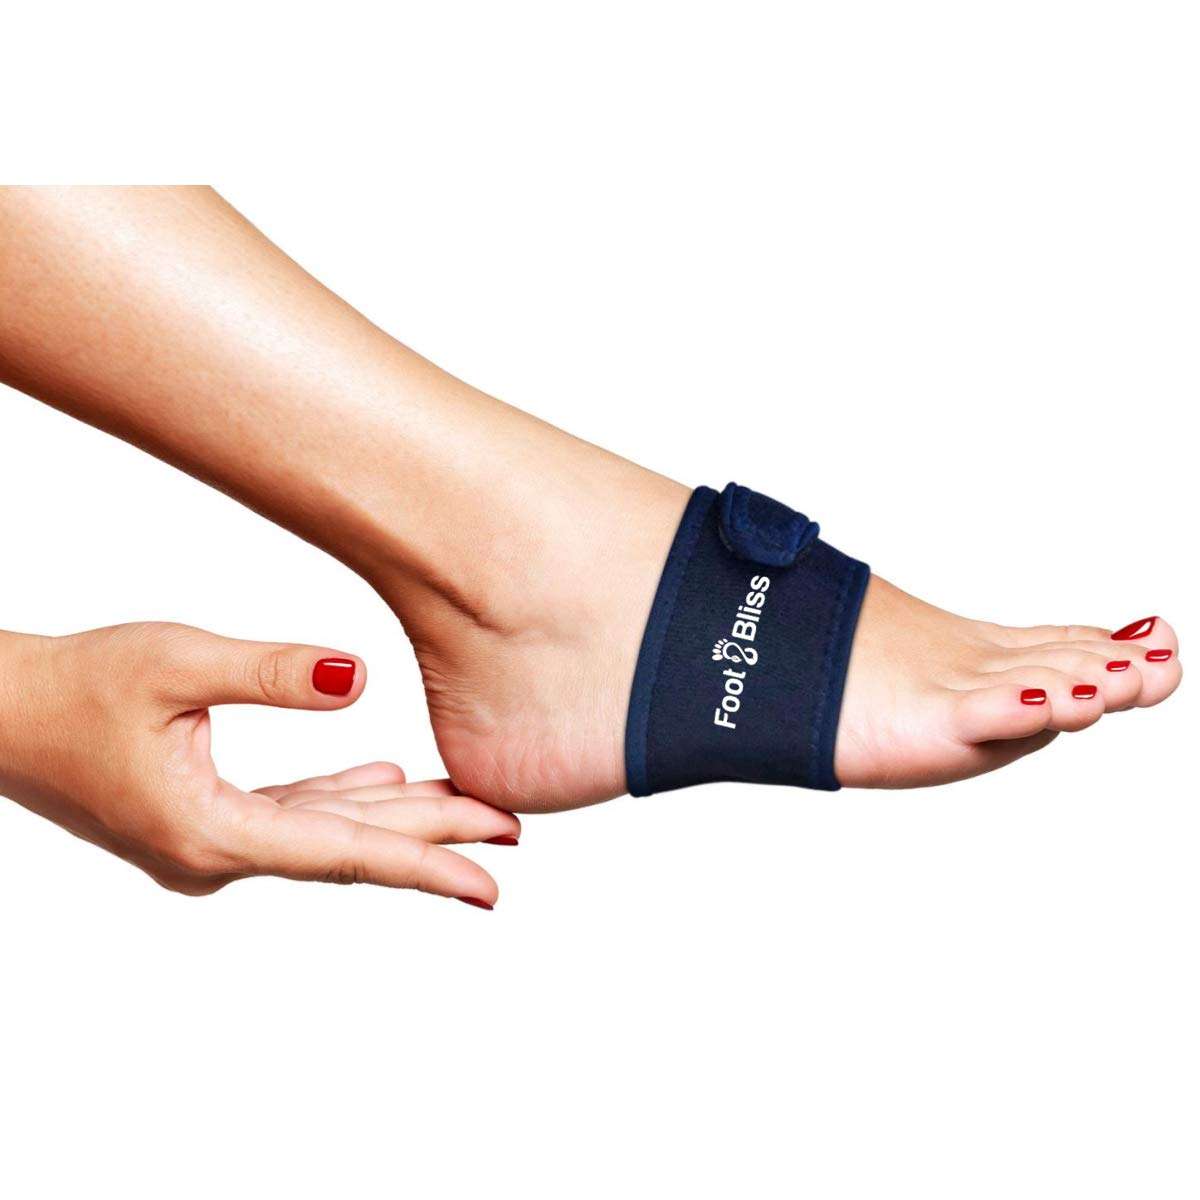 Padded Arch Support Compression Wrap with Adjustable Strap by Foot Bliss for Arch Pain, Plantar Fasciitis, Foot Pain, High Arches, Flat Feet, Heel Spurs, Gel Pad to Relieve Aches Pains (Blue, Regular) by Copper Compression Gear (Image #1)